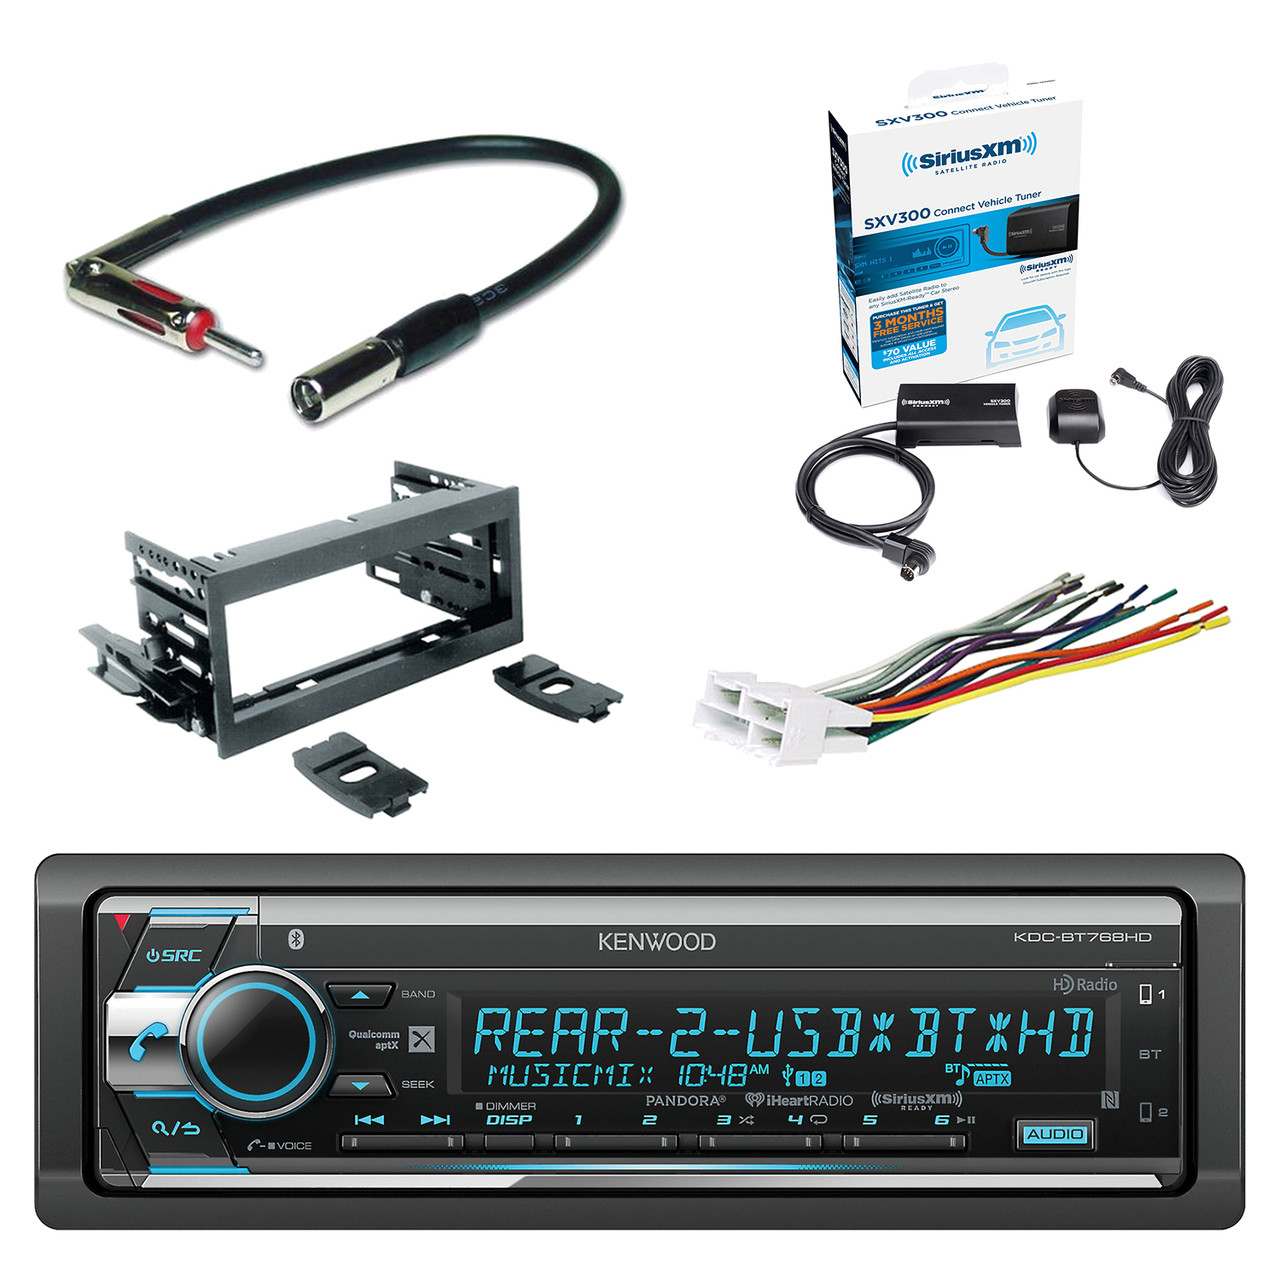 hight resolution of kenwood single din cd am fm car audio receiver with bluetooth siriusxm satellite radio vehicle tuner kit scosche dash kit scosche gm micro delco antenna